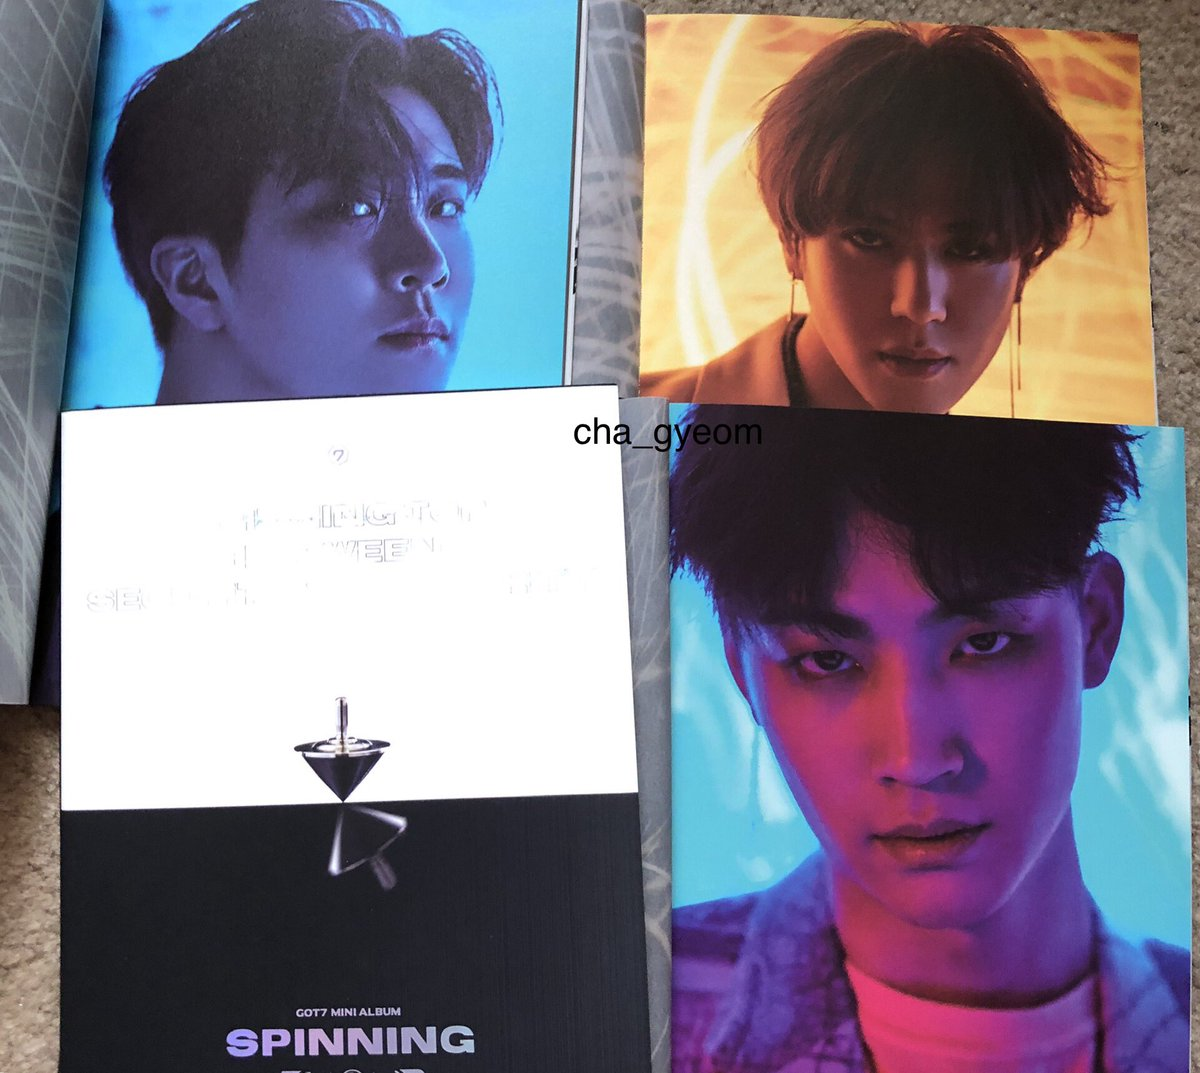 GOT7 SPINNING TOP ALBUM GIVEAWAY  • 1 winner [maybe 2] • 1 spinning top album of your choice • 2 PCs  • 1 set preorder postcard things  • like+rt+follow • reply a pic of your bias  • WORLDWIDE  • ends Sept 10th 7pm pst   #GOT7  #GOT7_KEEPSPINNING  @GOT7Official<br>http://pic.twitter.com/VFZOGvIuHj